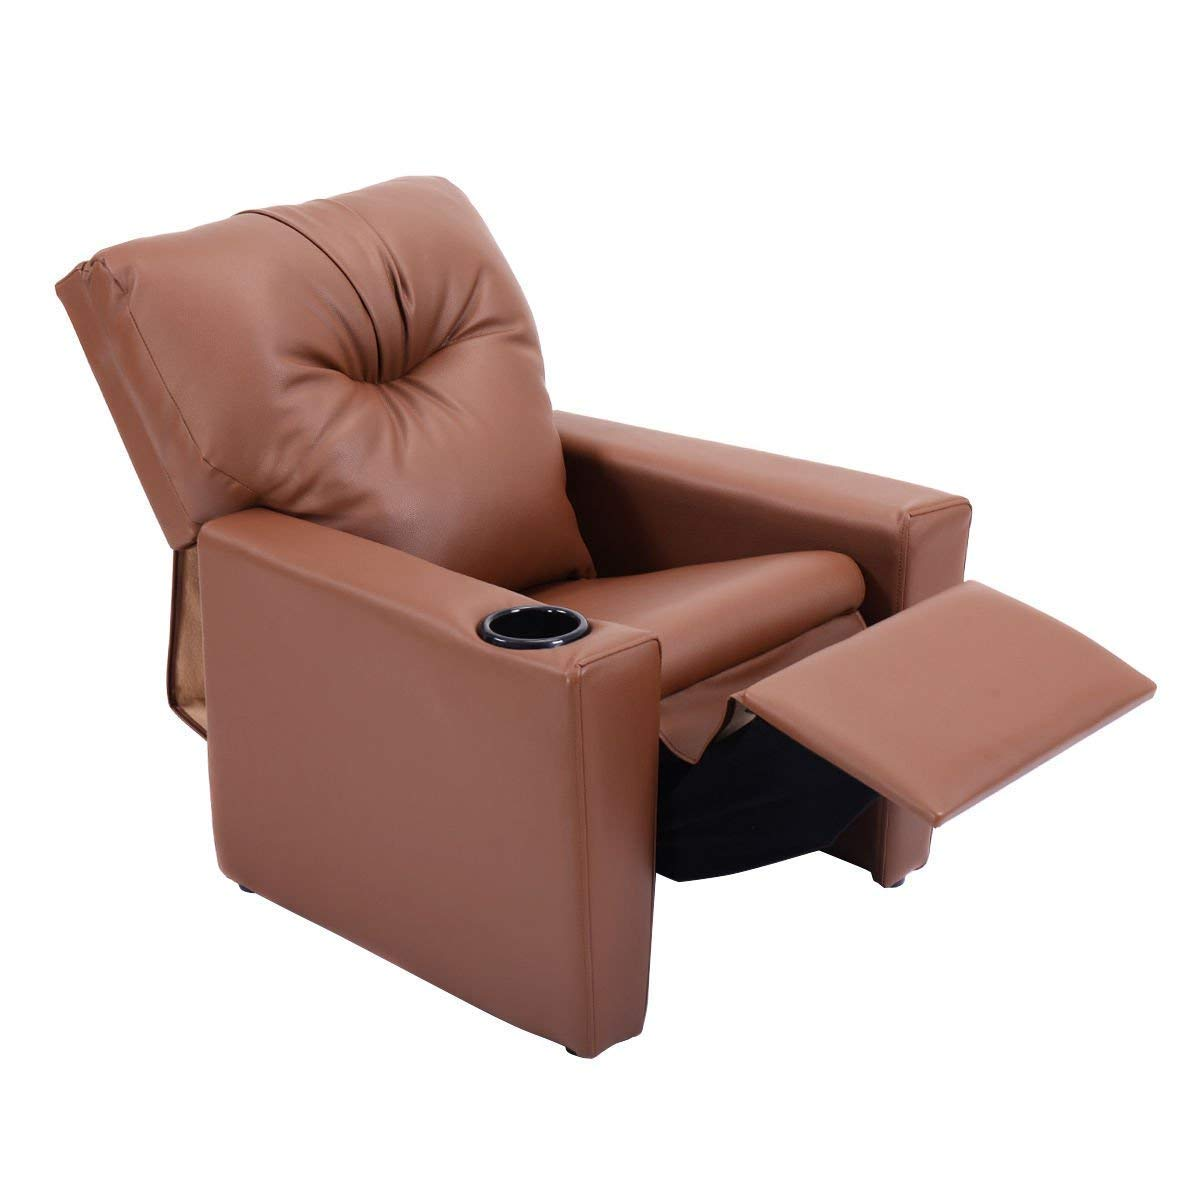 HONEY JOY Kids Recliner Chair Manual PU Leather Reclining Seat w/Cup Holder (Black)